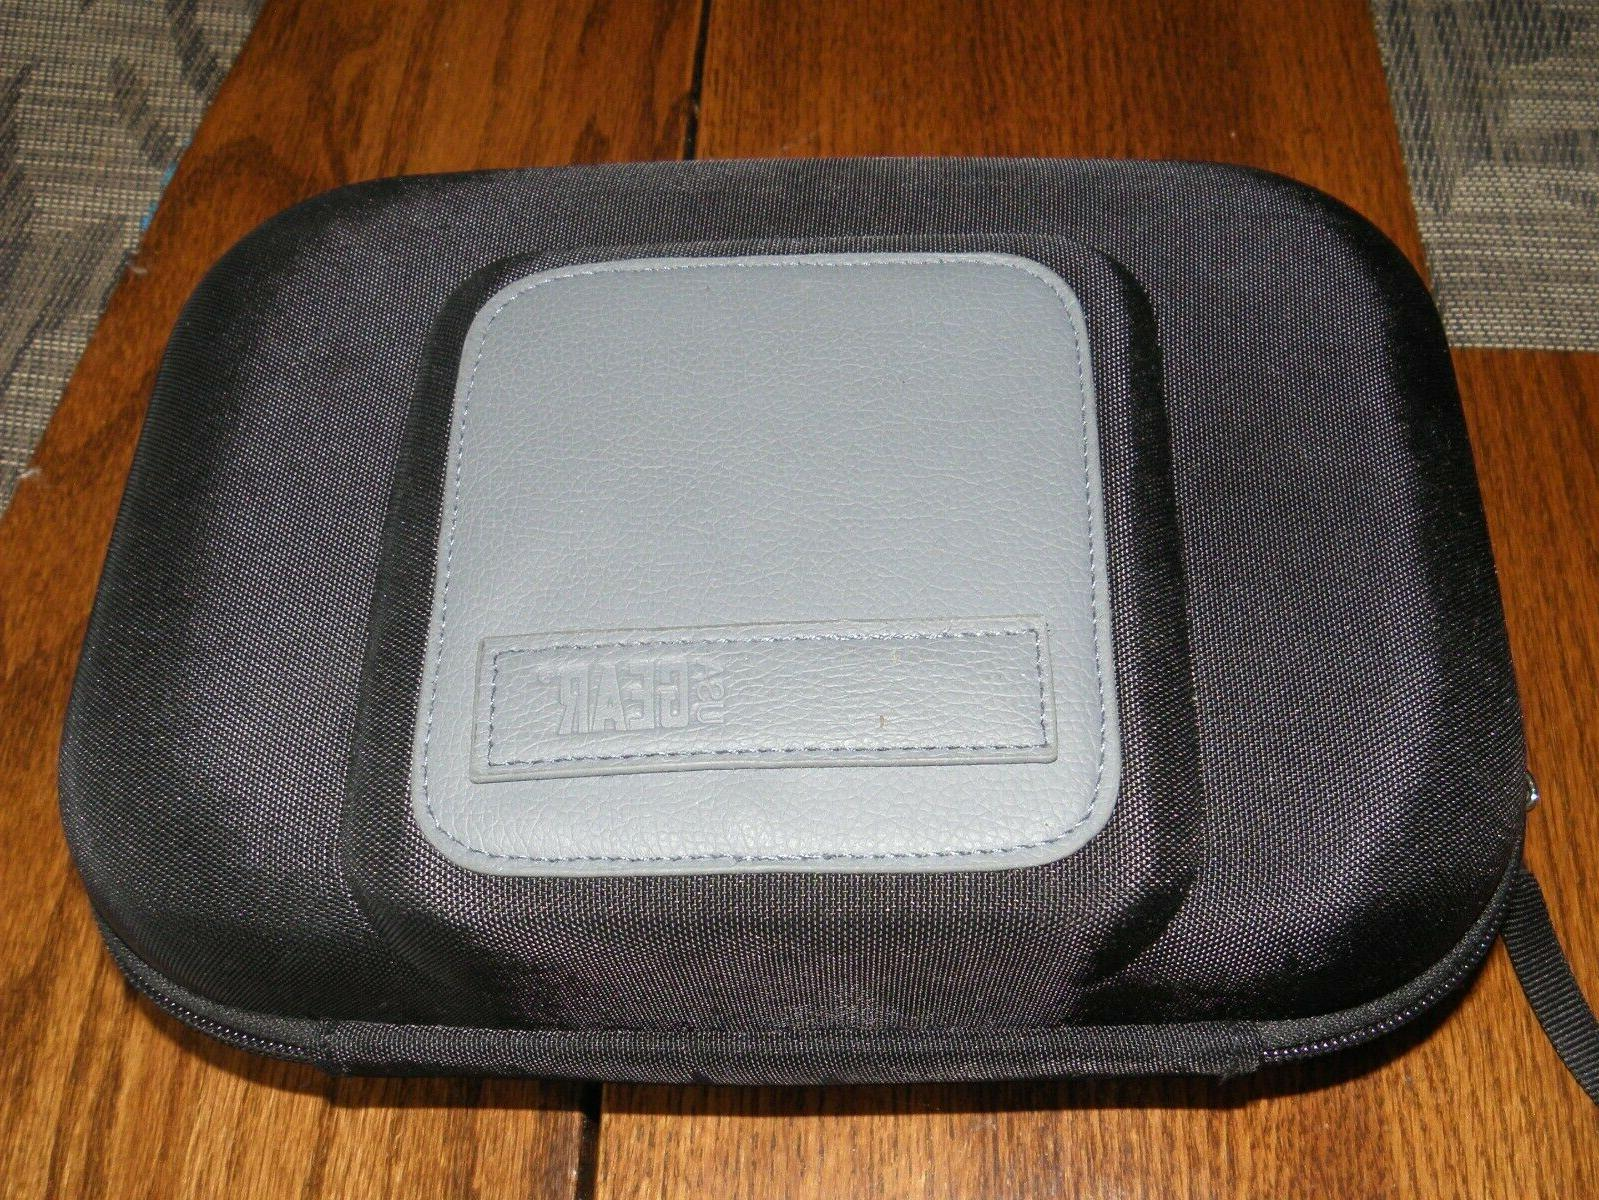 Brand 52 GPS with carrying case and